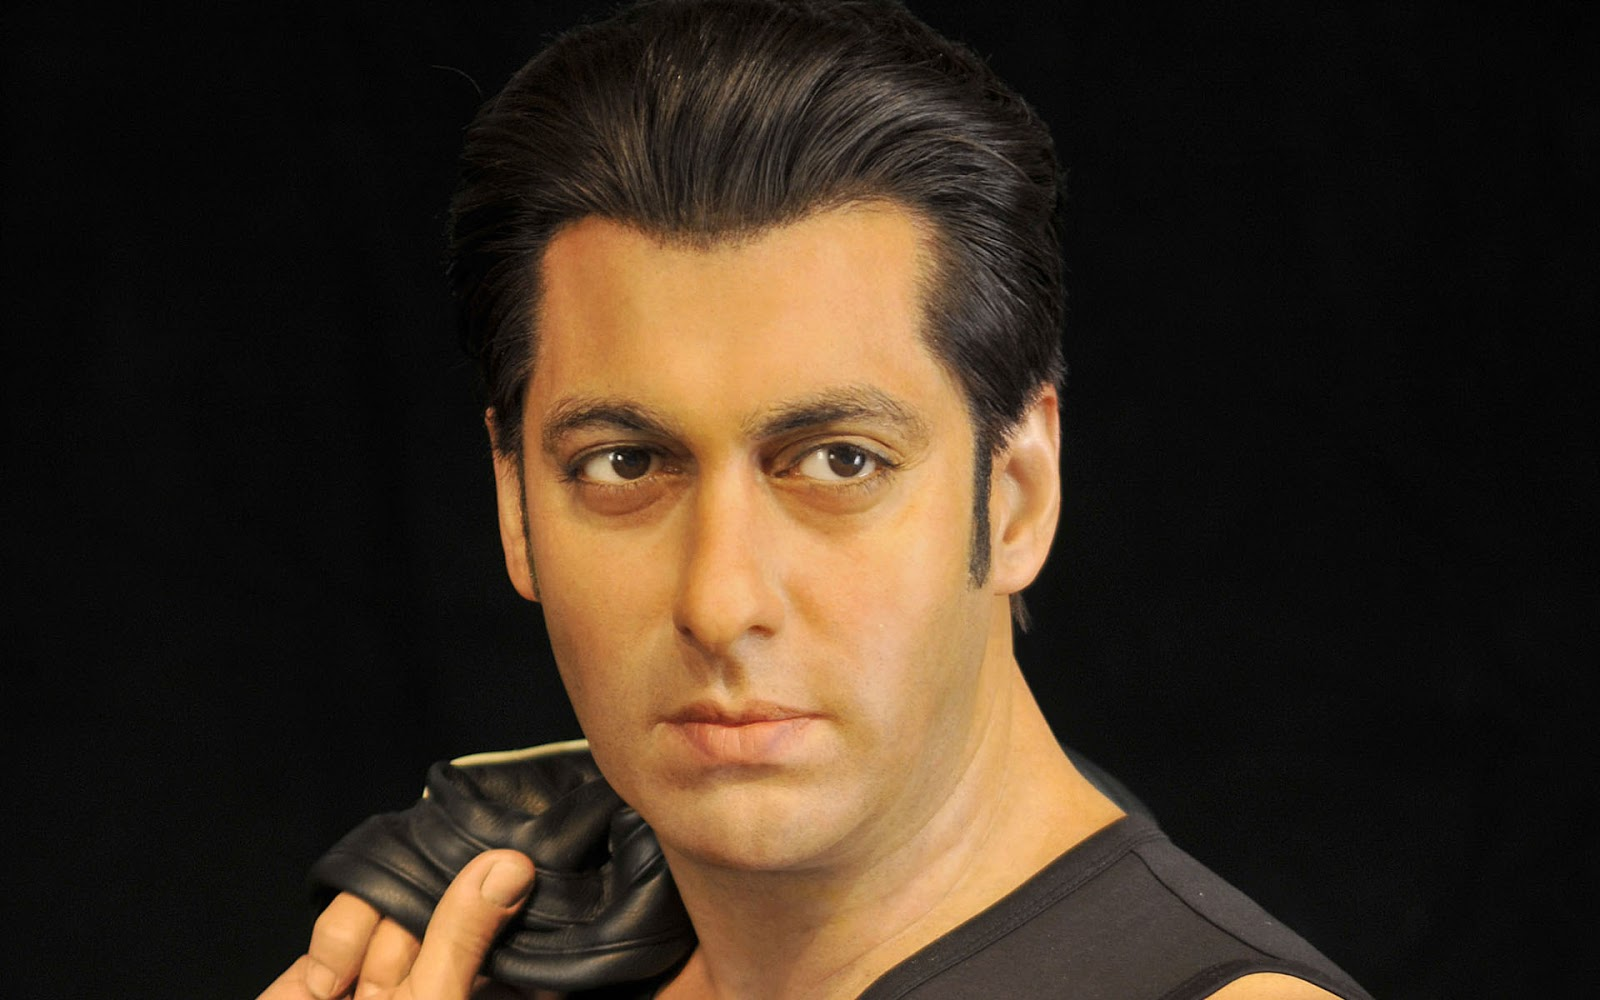 salman khan new HD wallpapers 2013 | Hollywood and ...